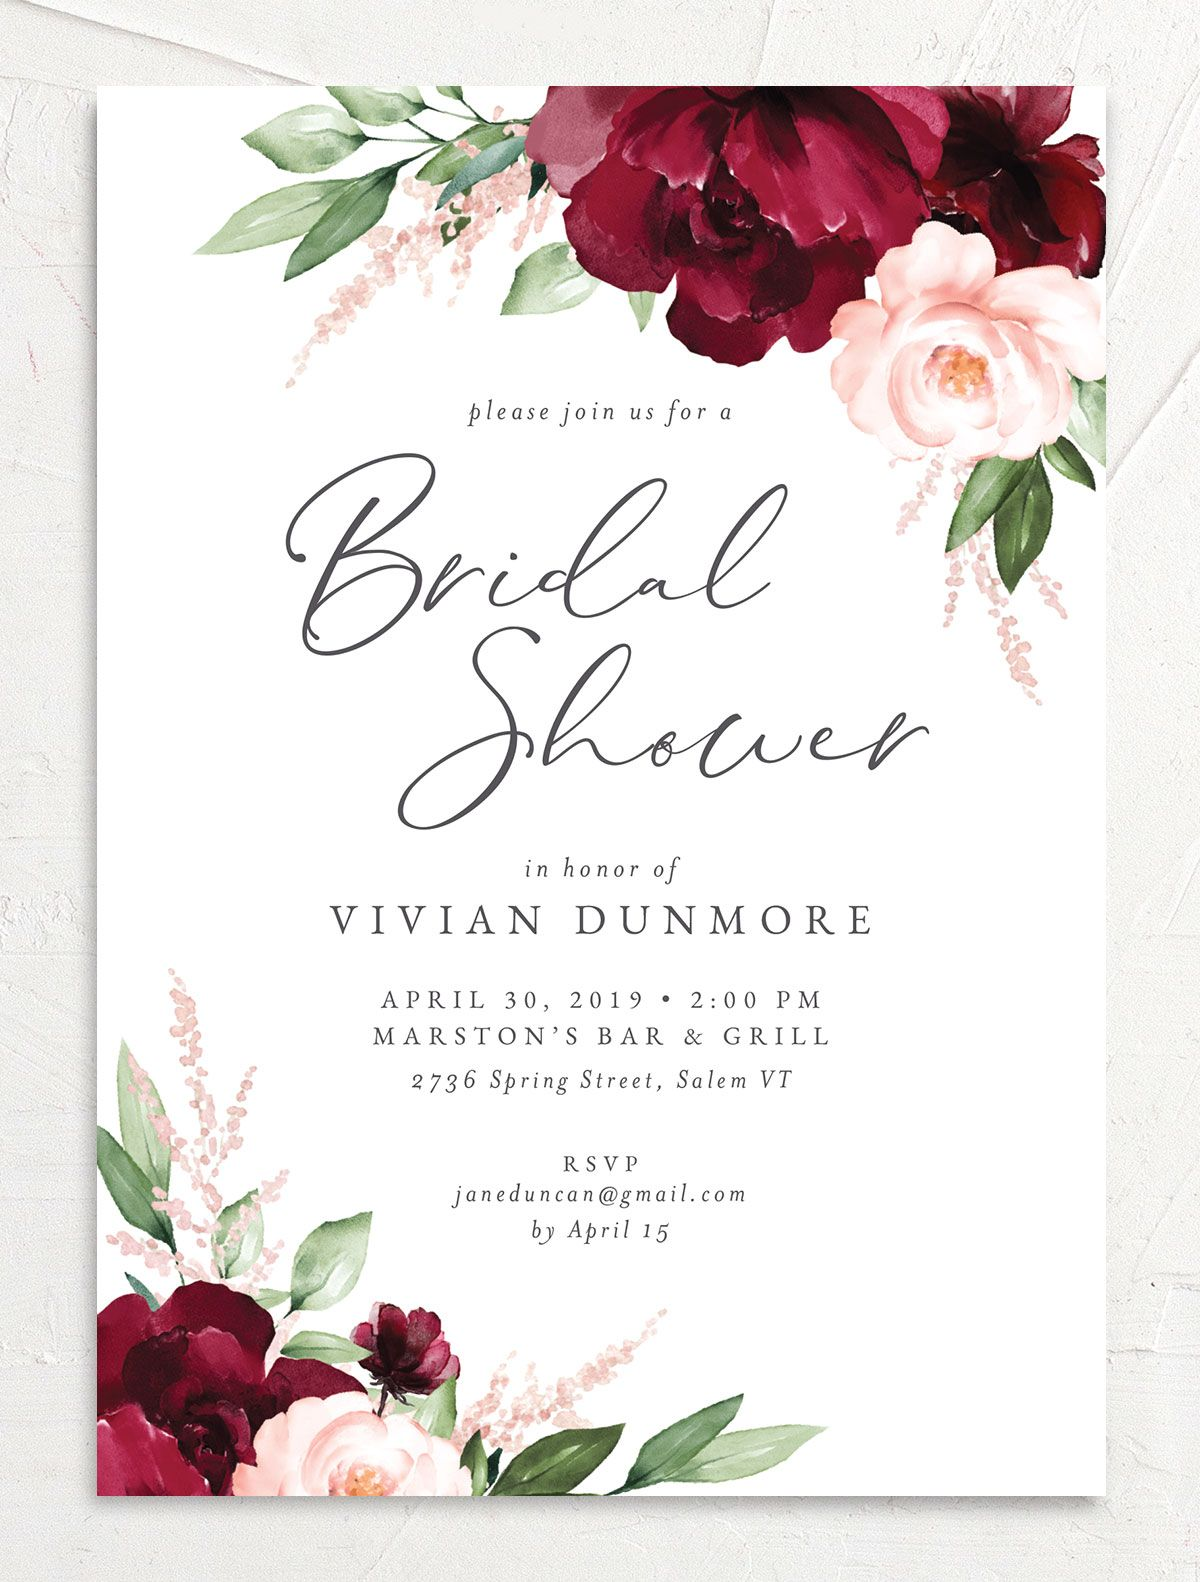 Beloved Floral Bridal Shower Invitation front in red